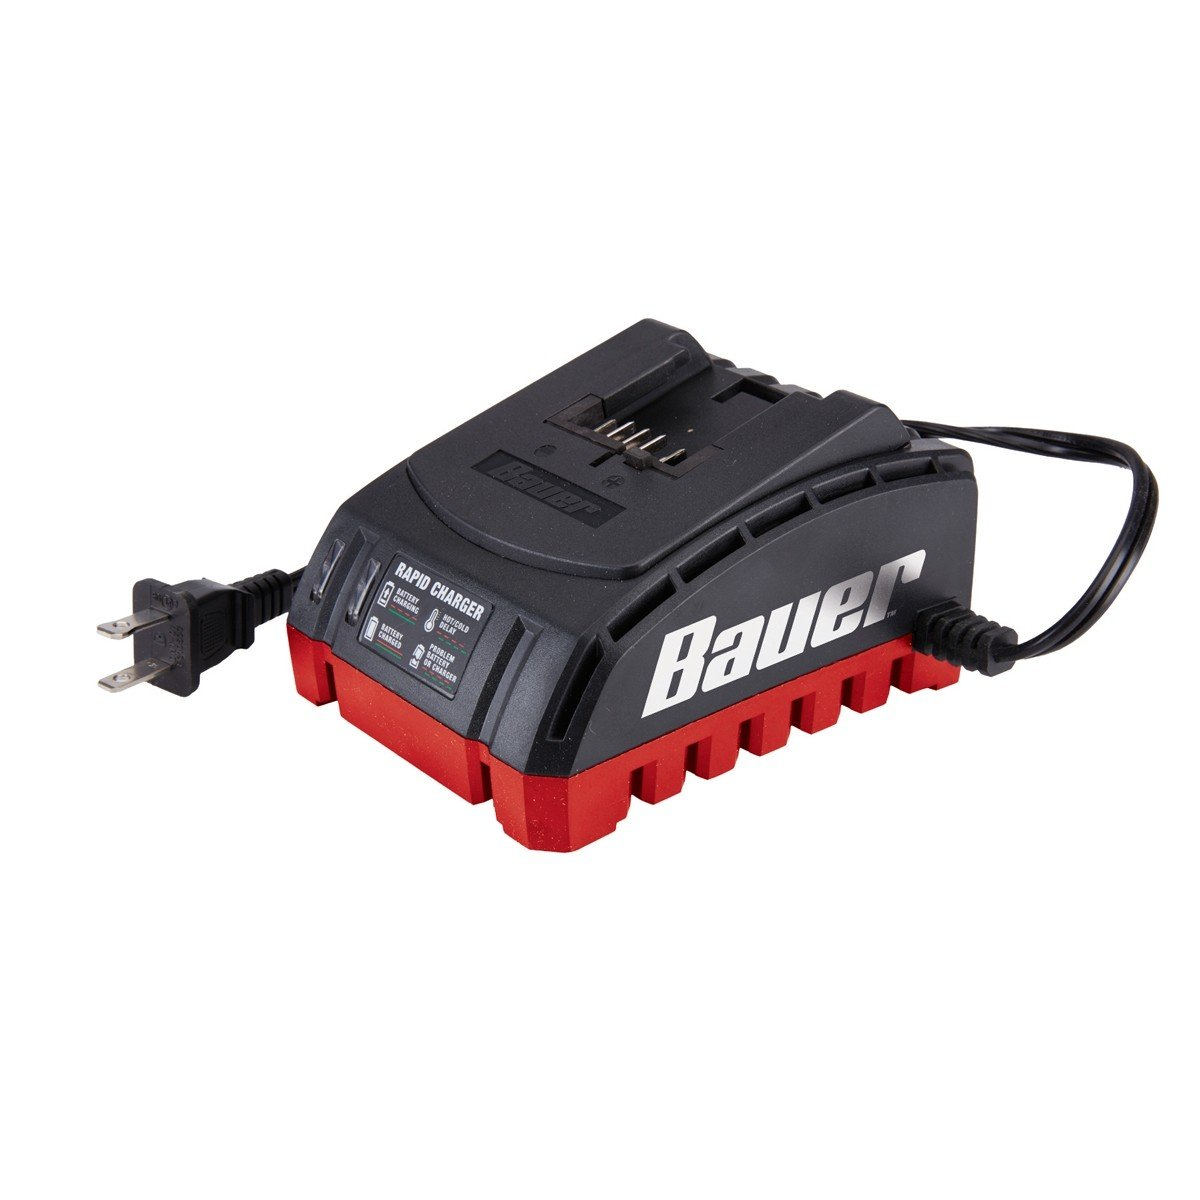 Bauer 1704C-B Hypermax Lithium Rapid Charger, 20 V